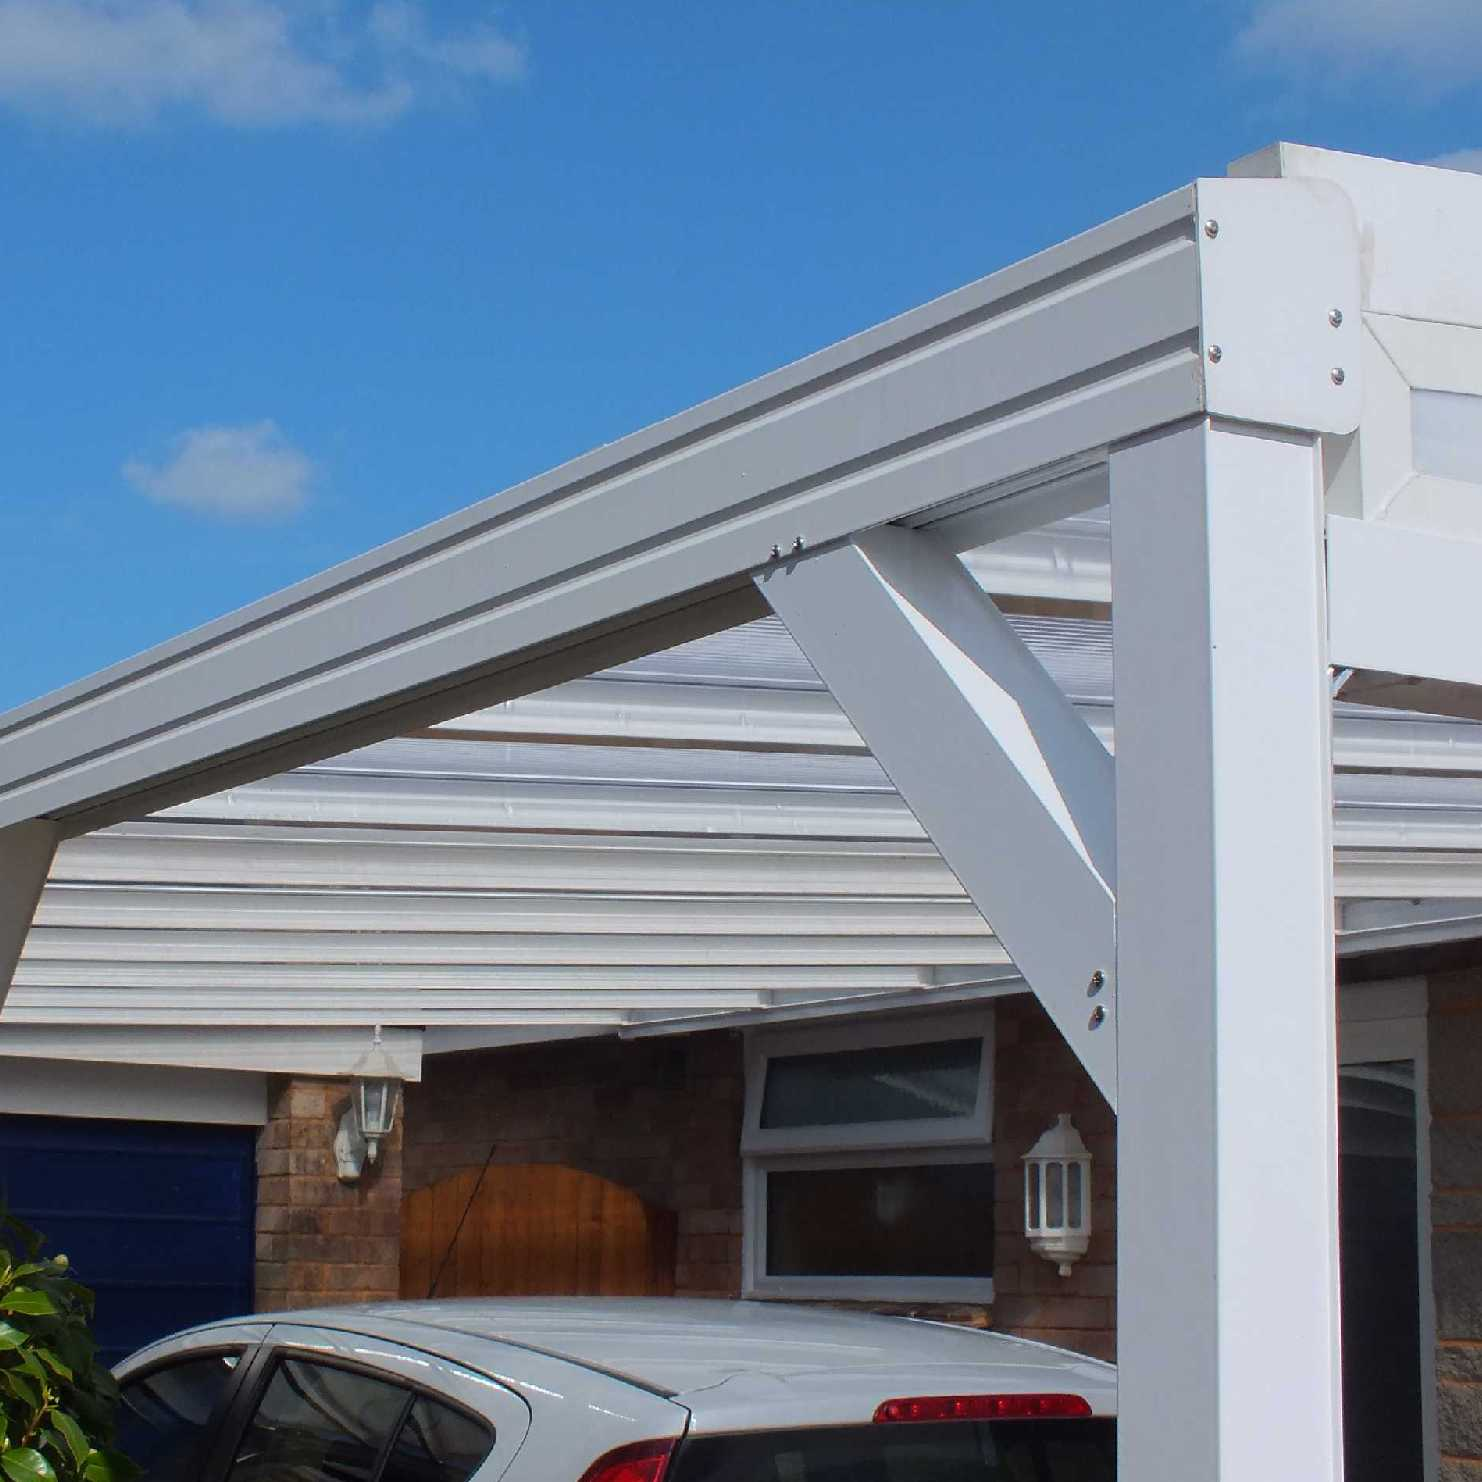 Great deals on Omega Smart White Lean-To Canopy with 16mm Polycarbonate Glazing - 7.8m (W) x 4.0m (P), (4) Supporting Posts